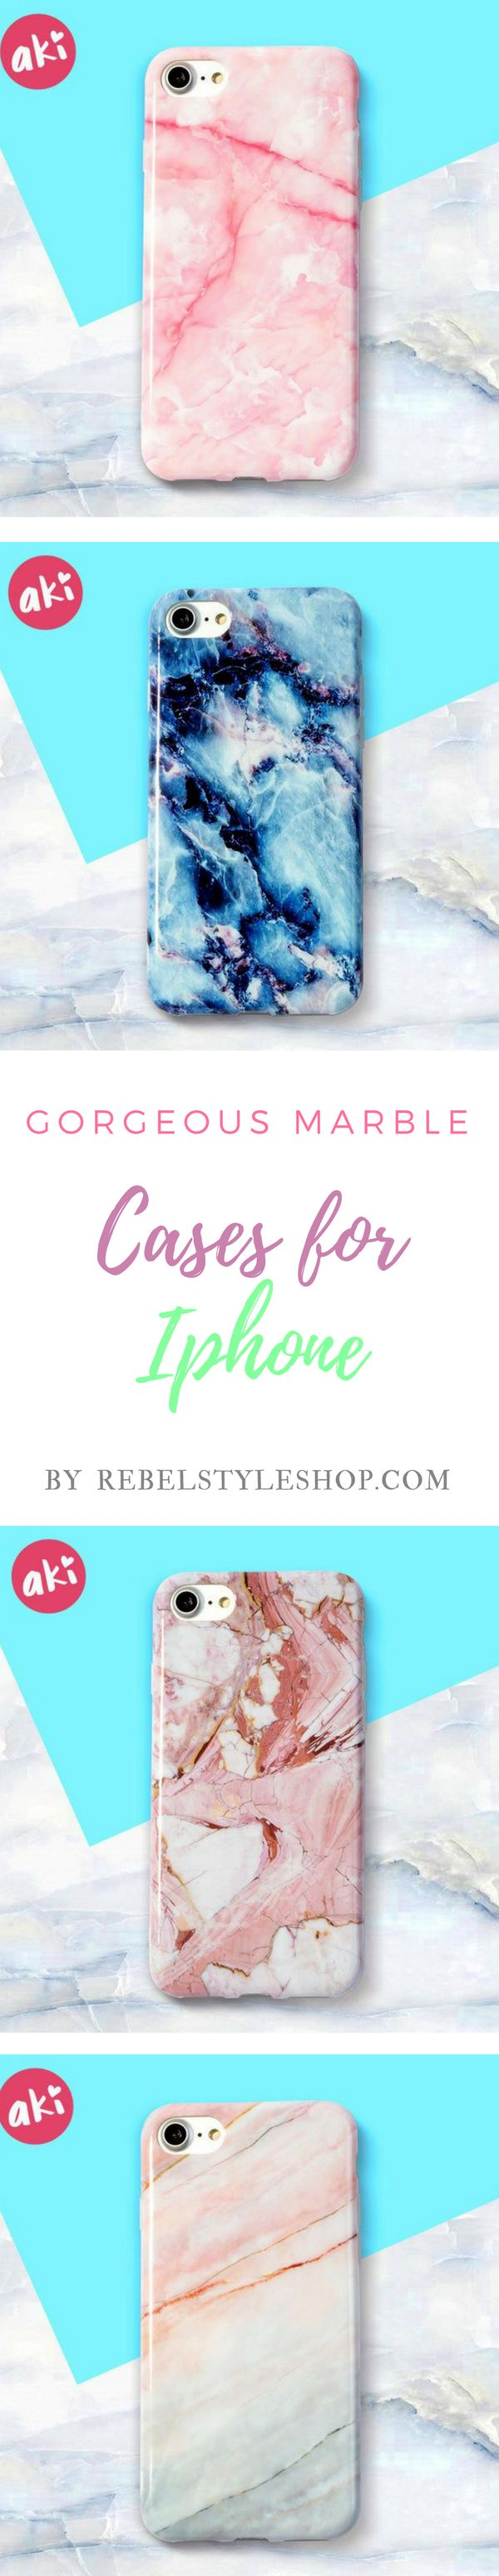 Take a look to this amazing marble iphone cases, they look super chic.  marble case marble phone case  marble iphone 6 case marble phone case iphone 6  marble iphone case  marble iphone 6s case  cute cases fashion case